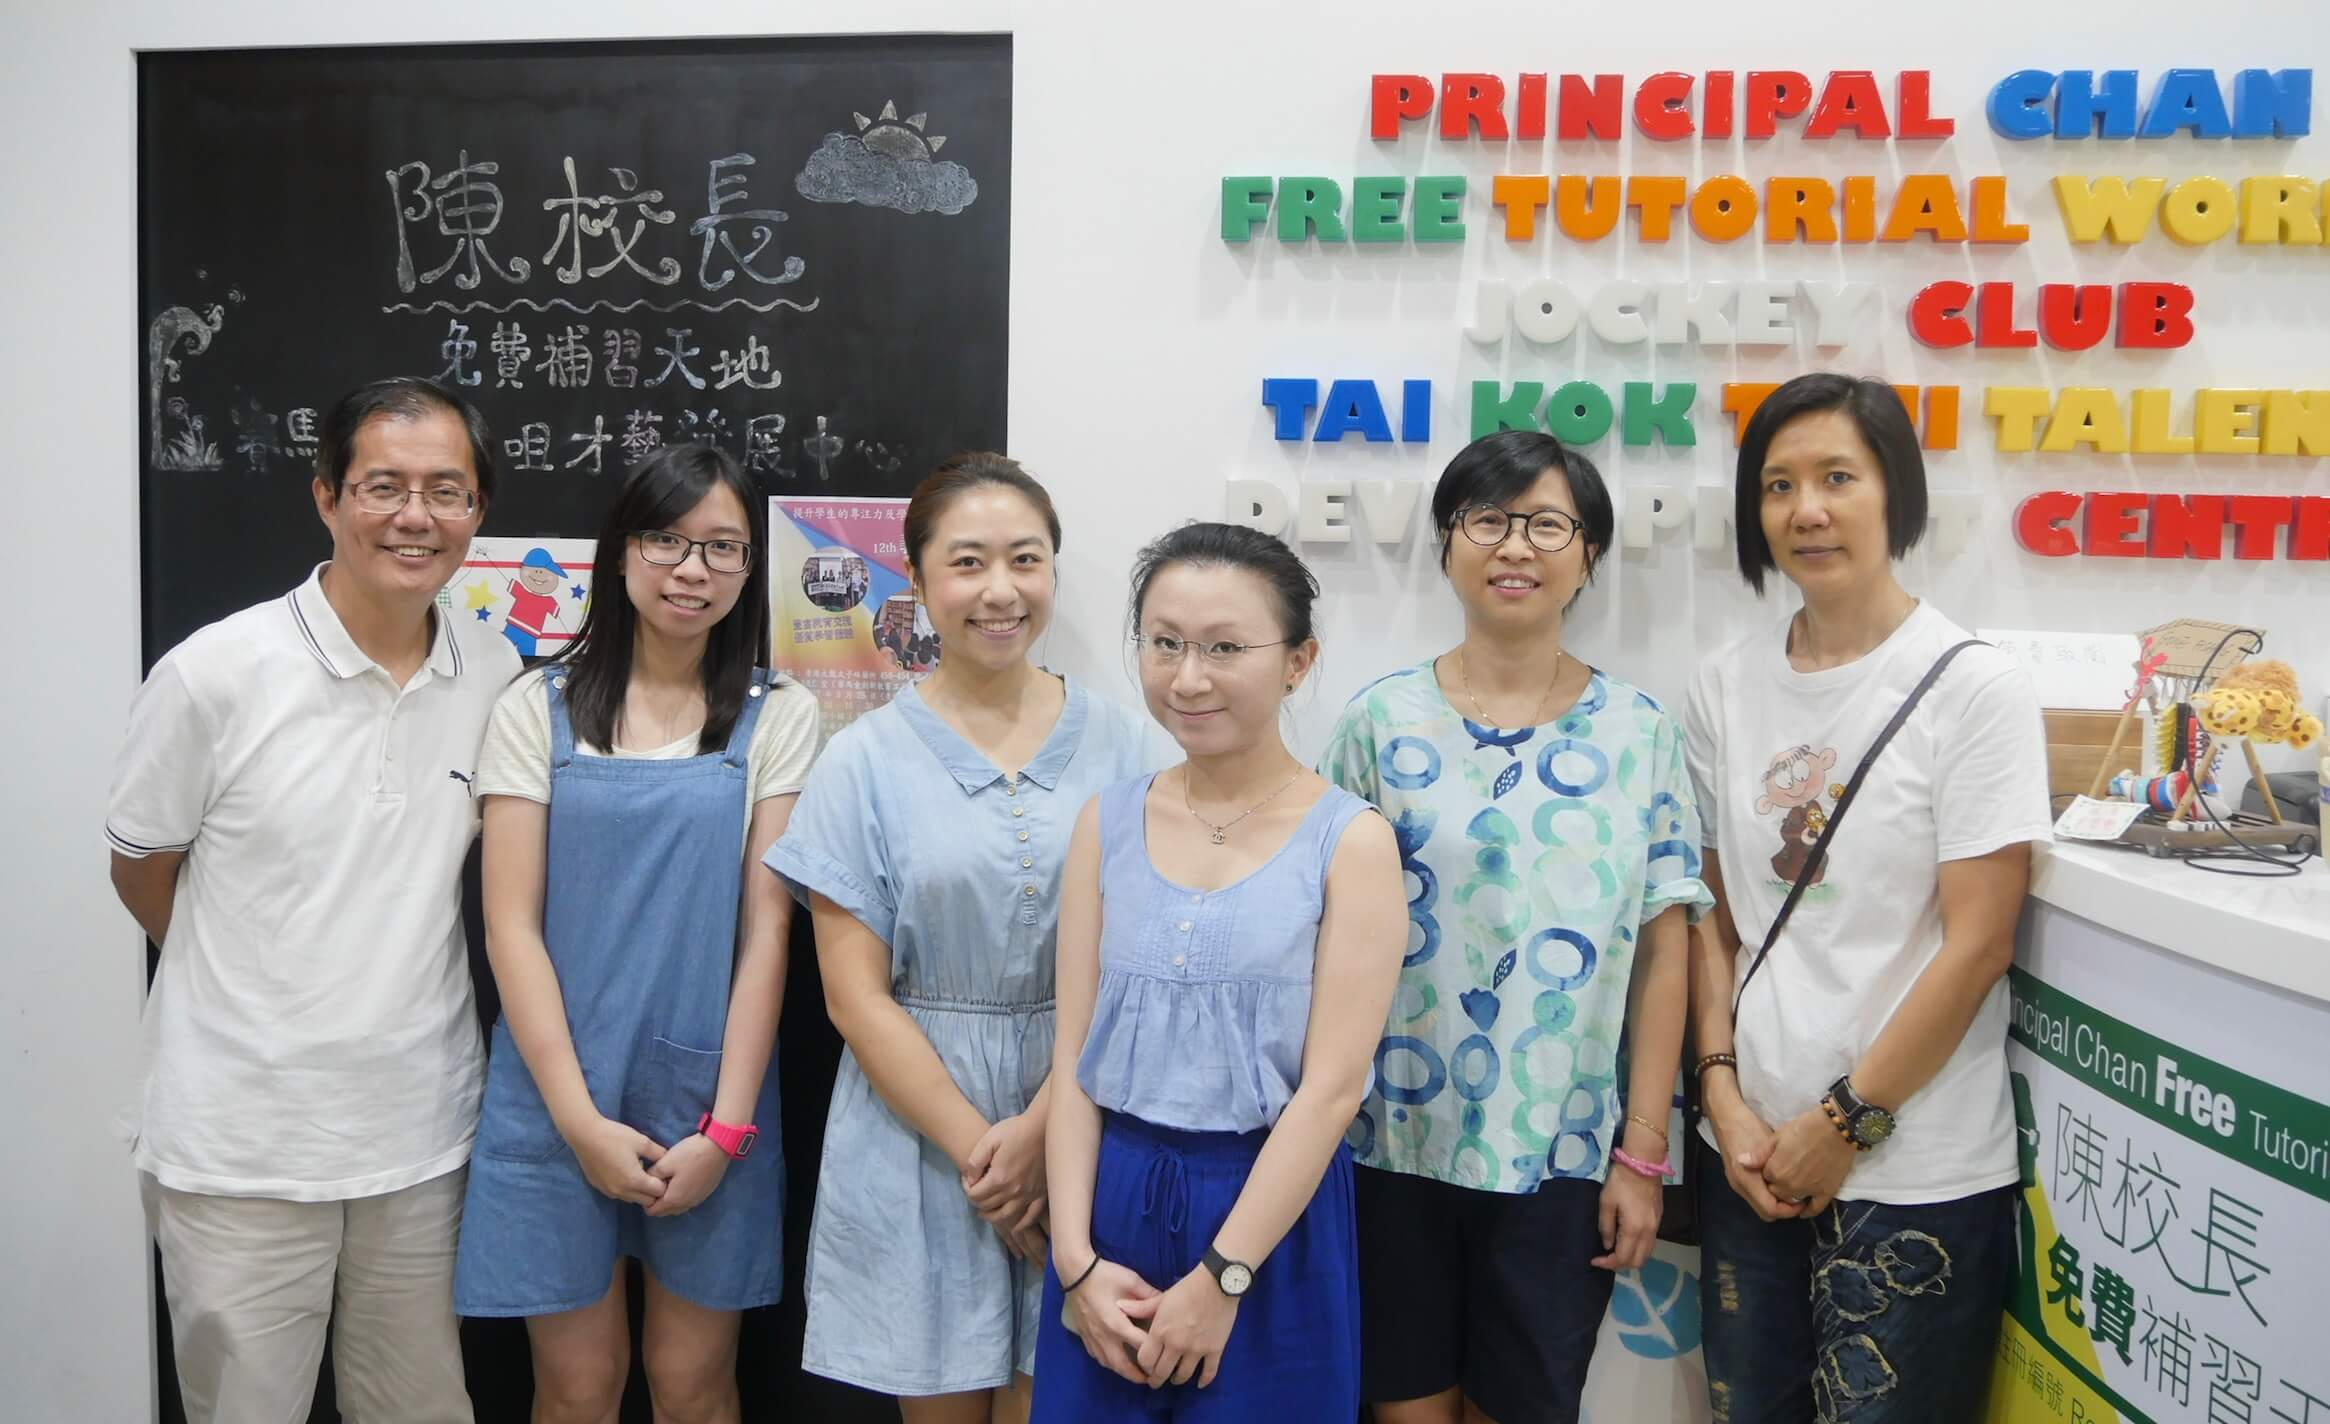 6 people group photo at charity centre